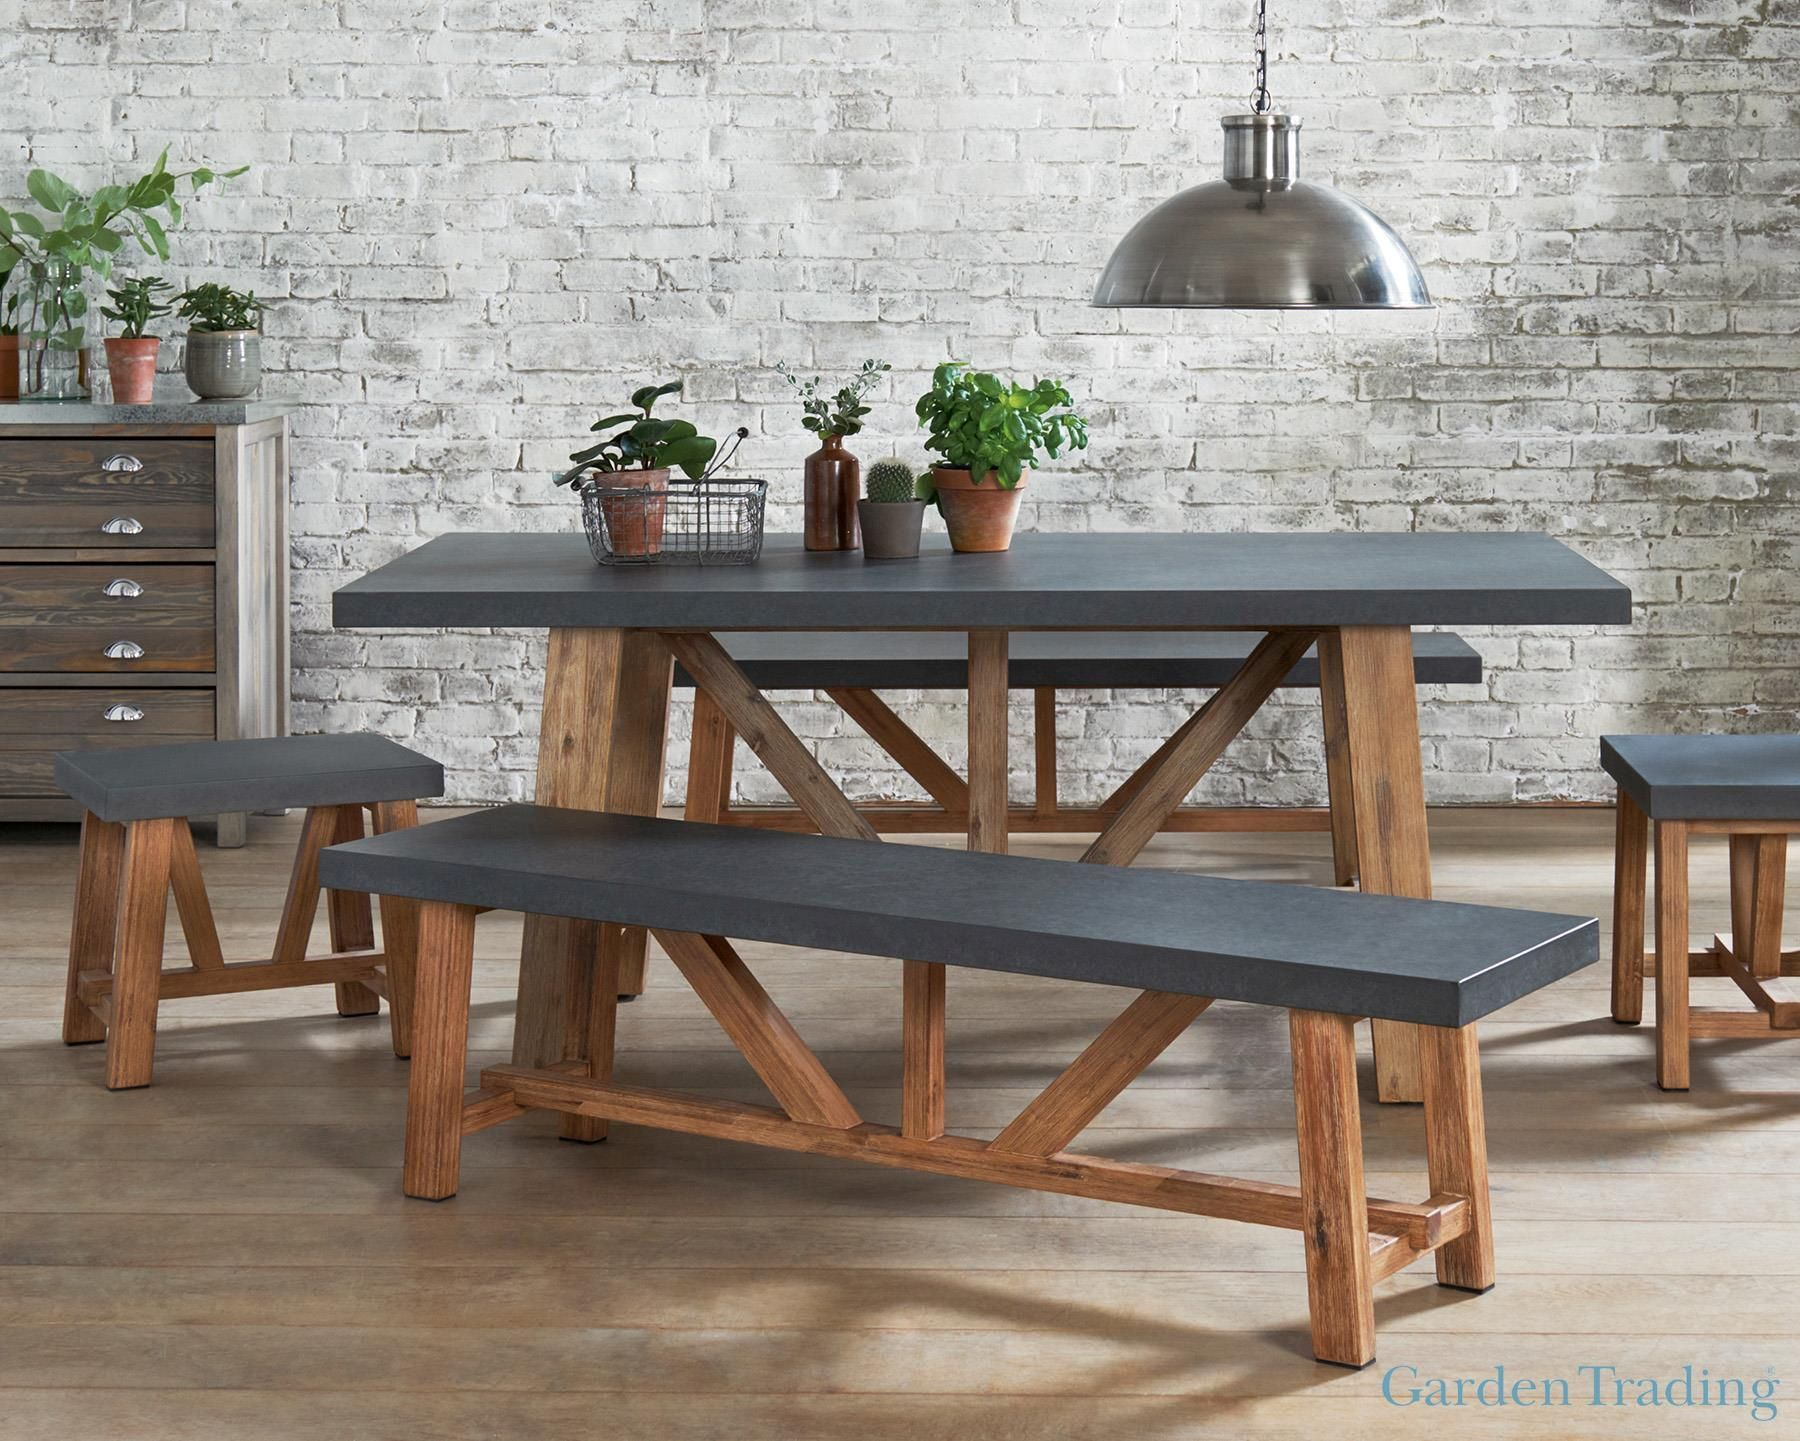 Buy Garden Trading Chilson Table And Bench Set From The Next UK Online Shop